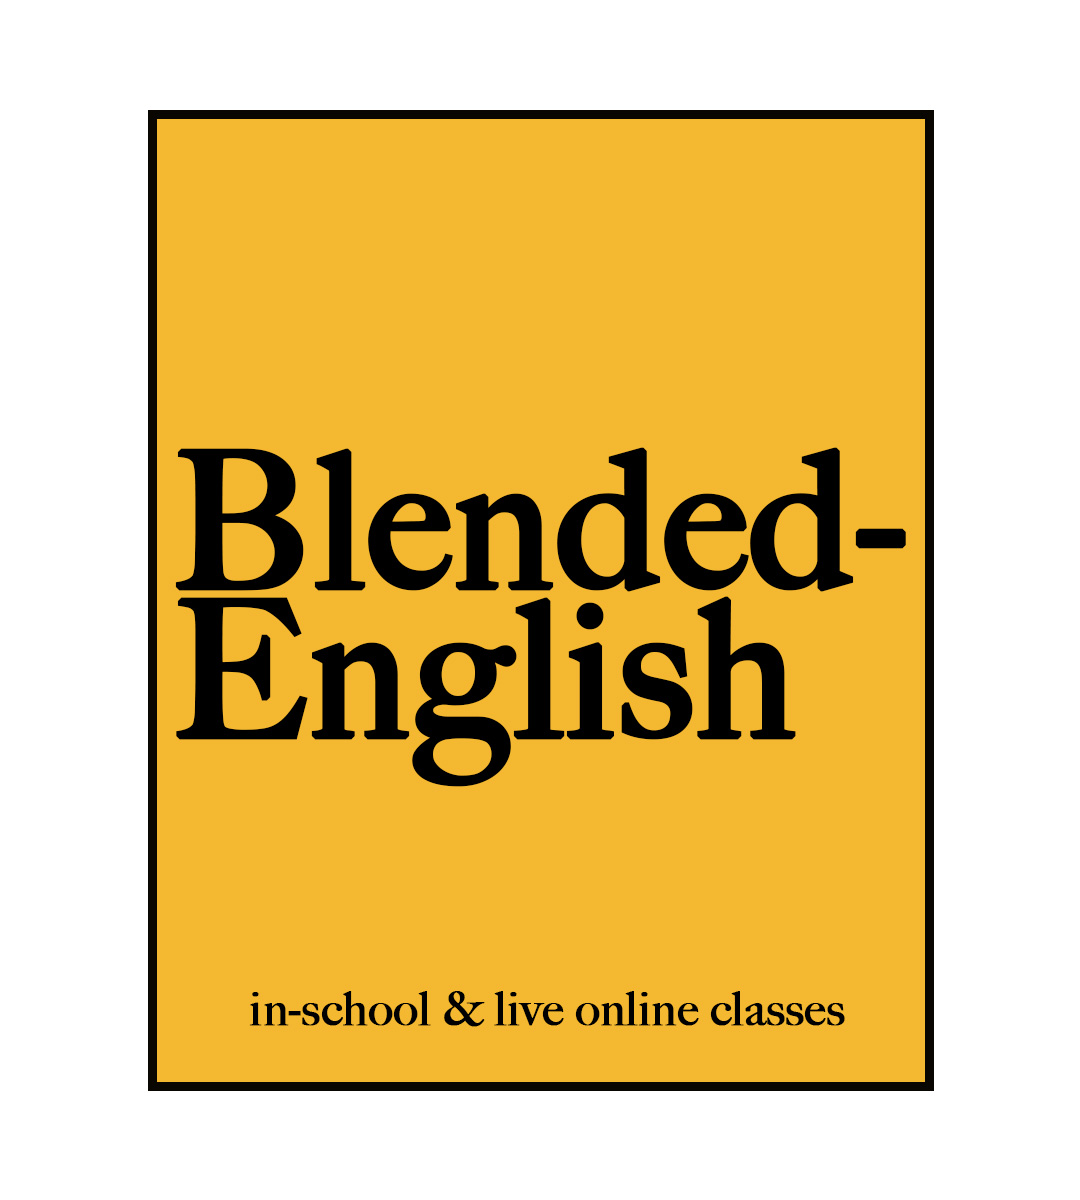 blended english yellow